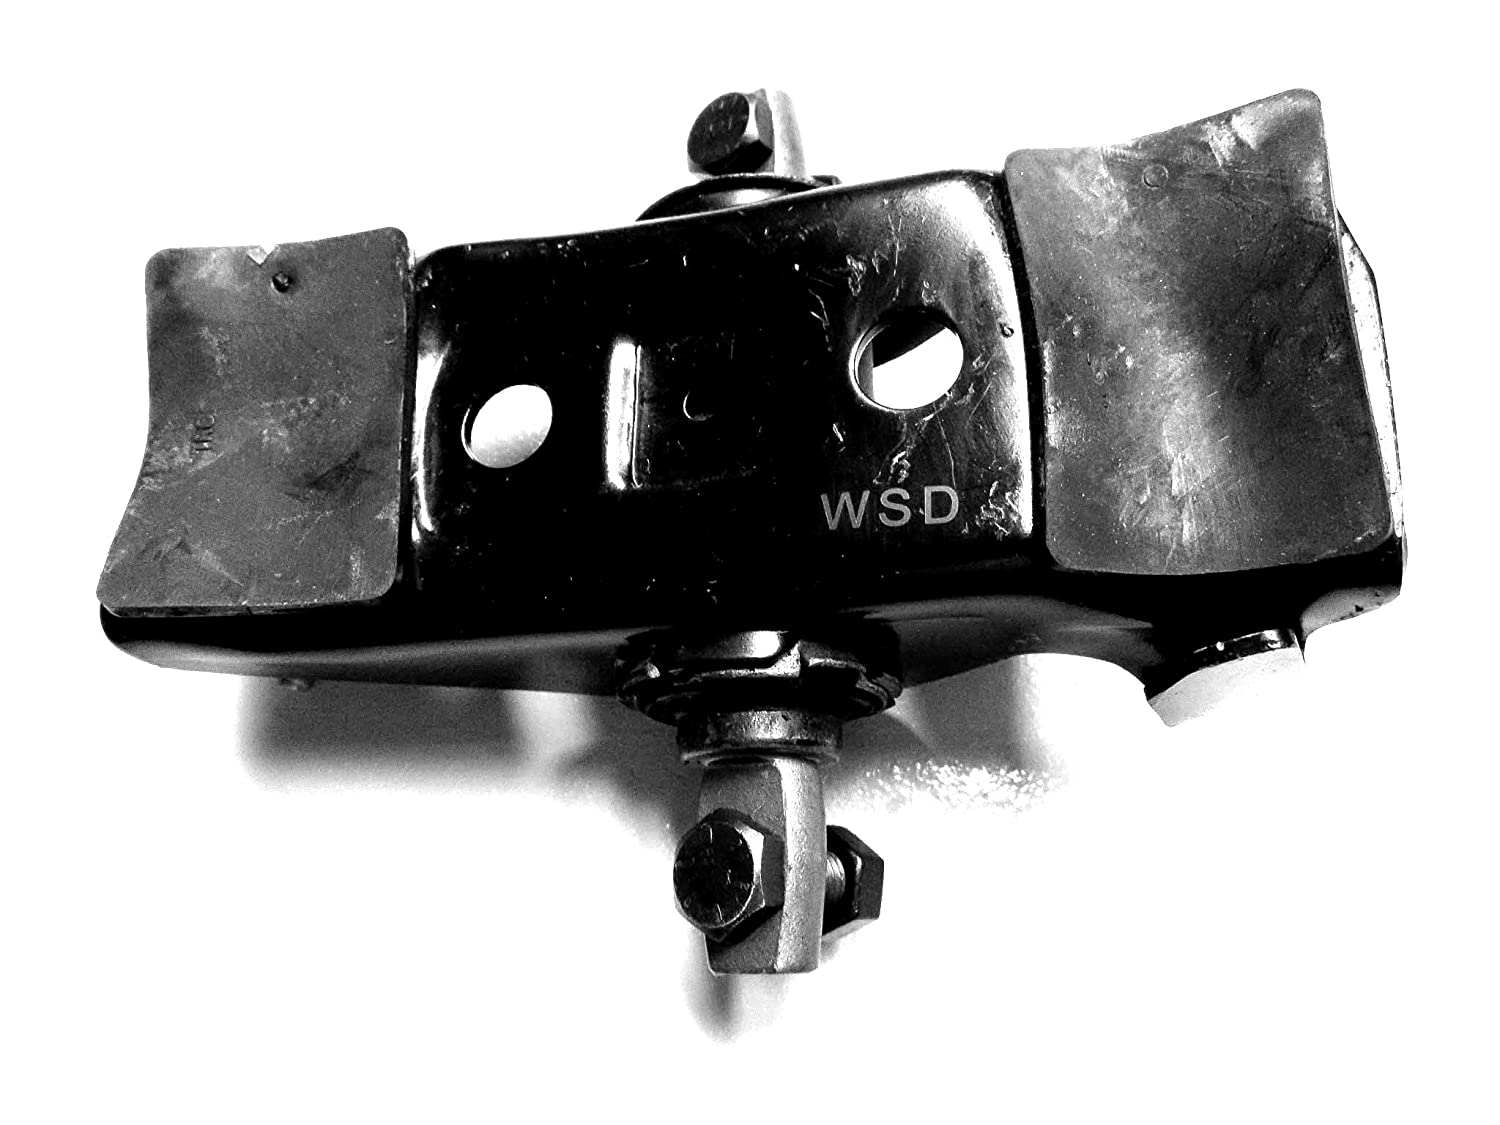 WSD-D7DY3388A Front Spring Perch Saddle 1965-1973 Mustang 1966-1971 Fairlane 1960-1977 Comet 1960-70 Falcon 1970-77 Maverick